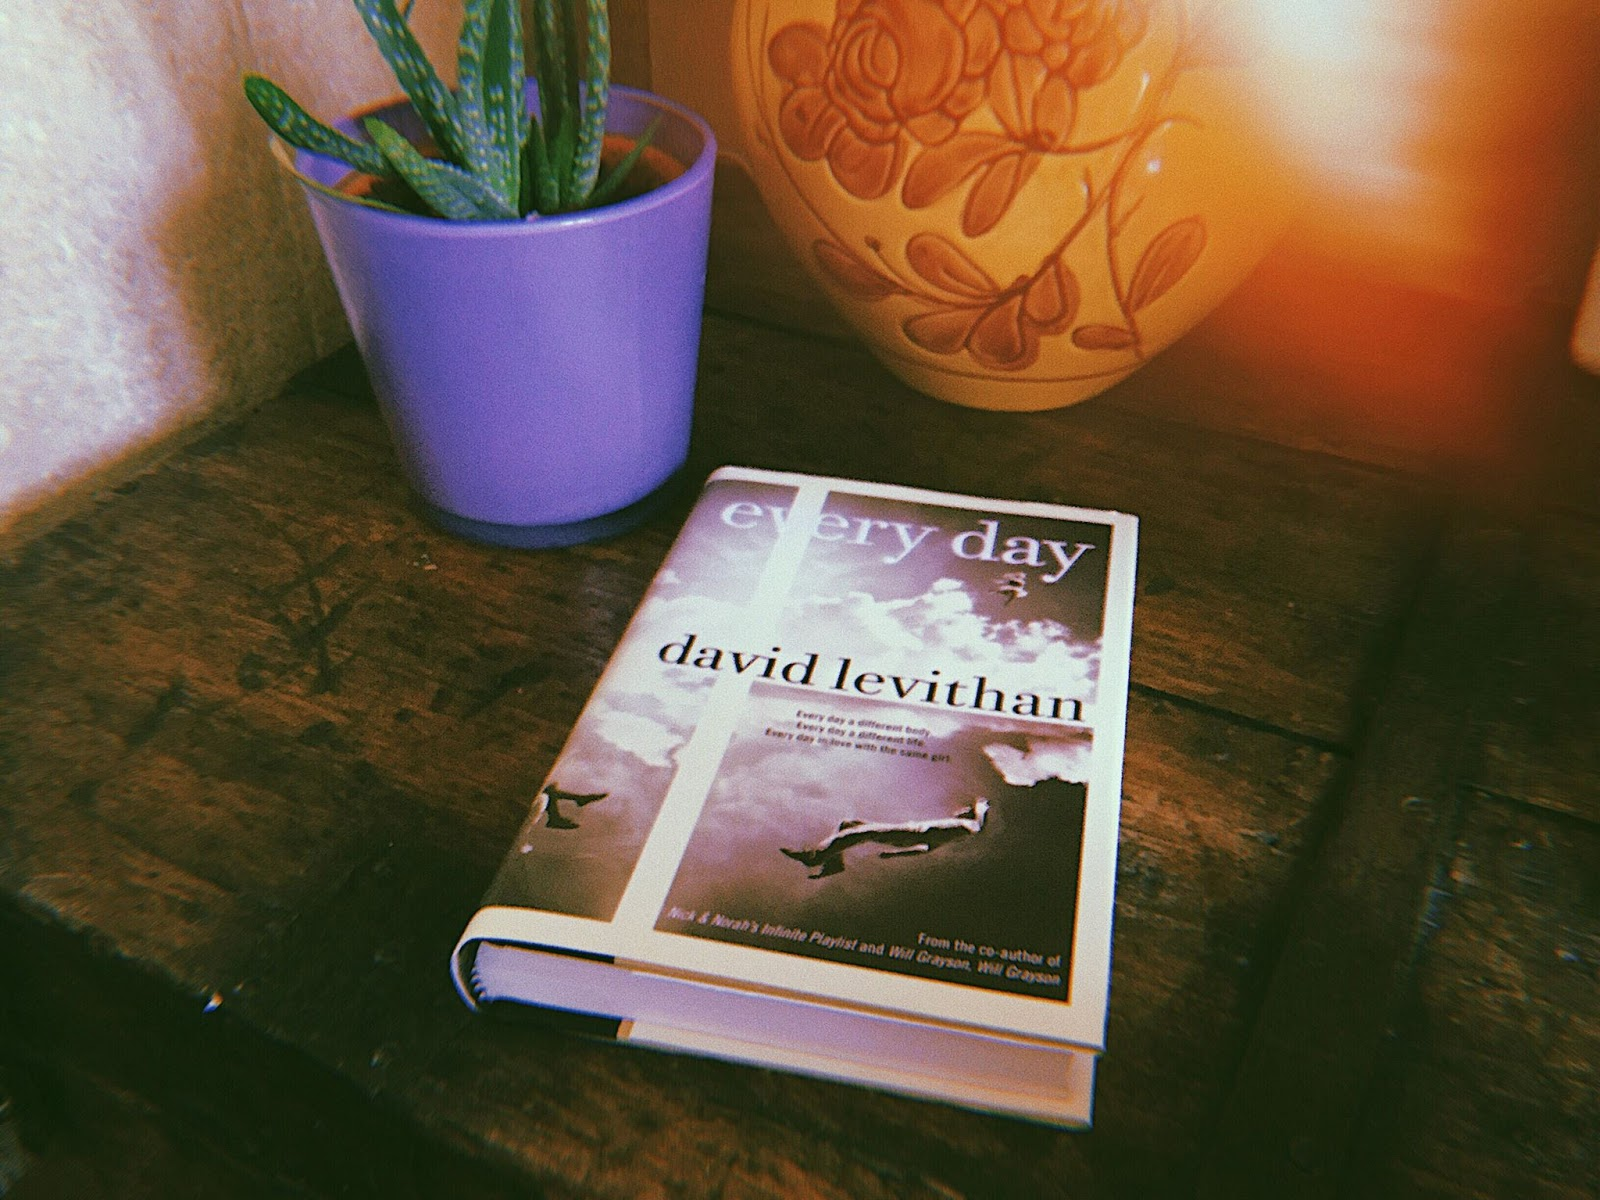 Every Day David Levithan novel